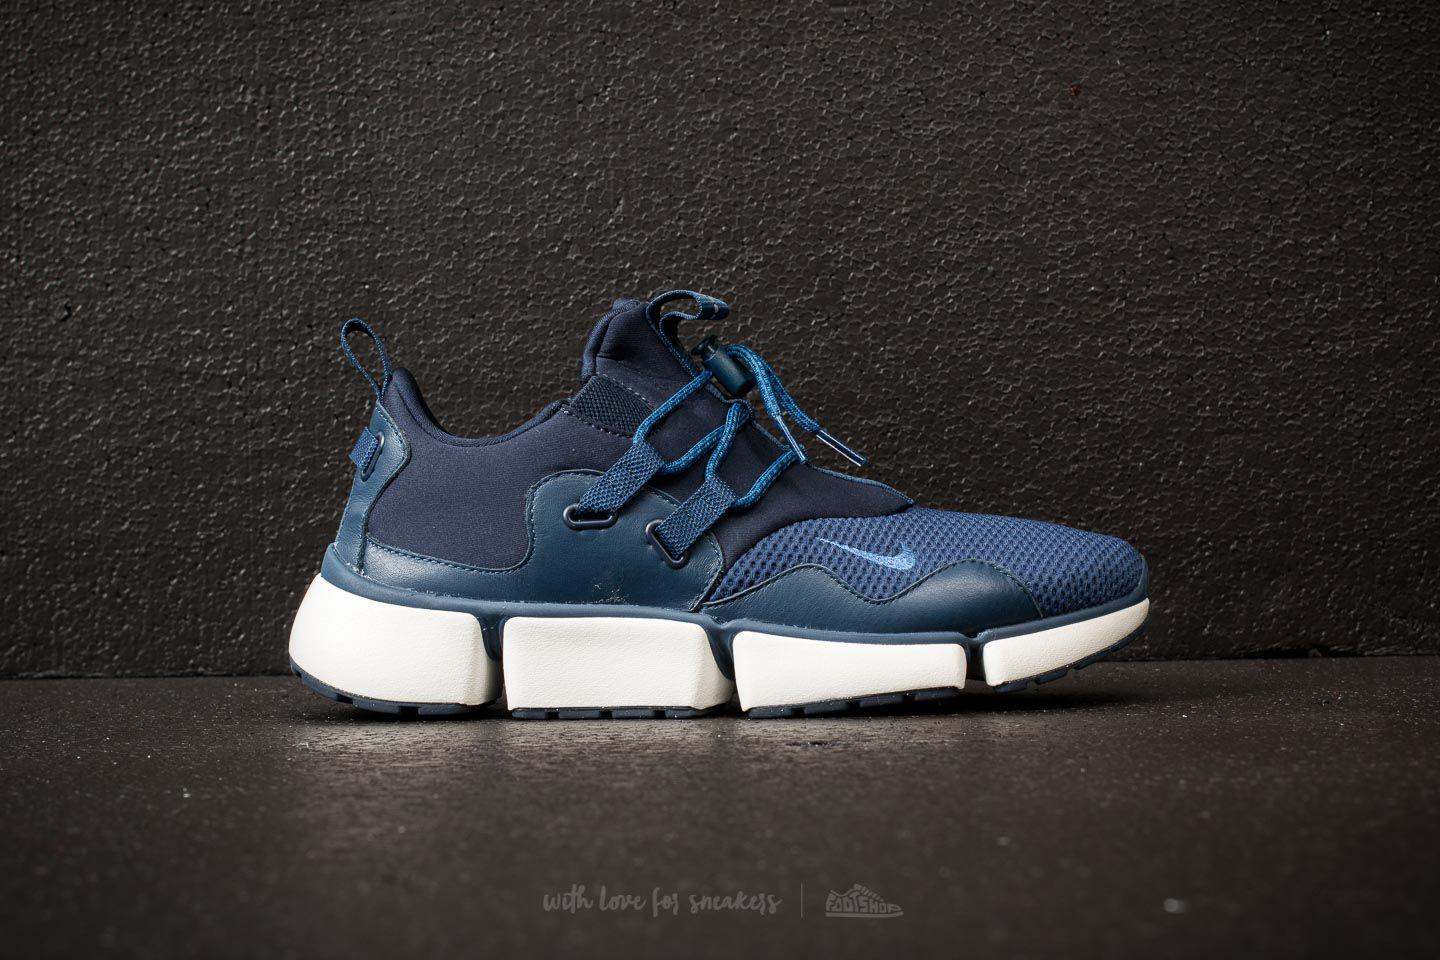 675bd2586bf8 Lyst - Nike Pocketknife Dm Obsidian  Gym Blue-navy-sail in Blue for Men